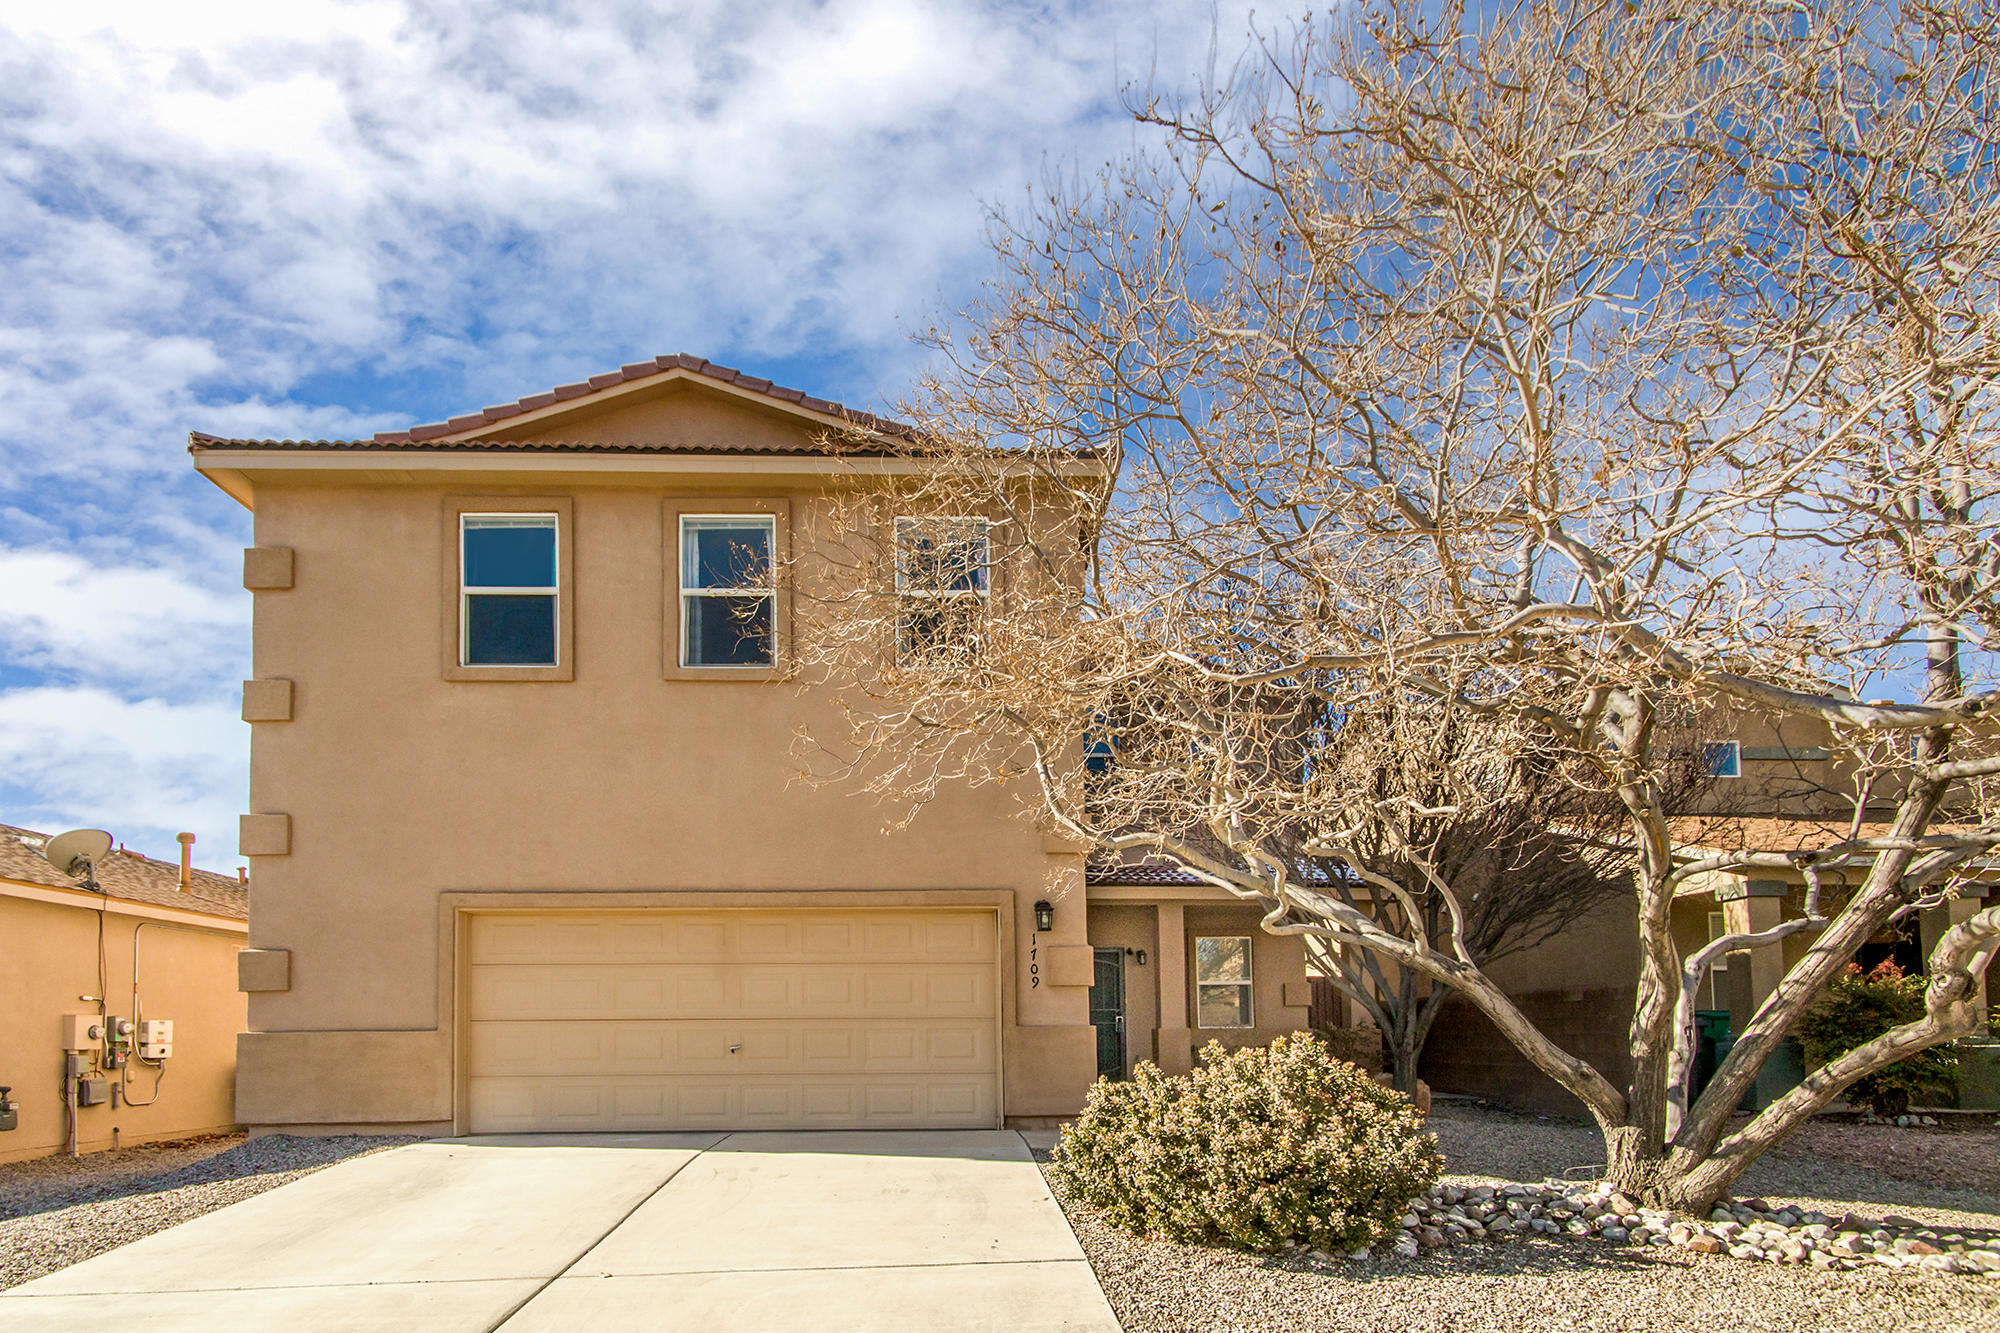 Terrific open floor plan in popular Cabezon neighborhood!  3 large bedrooms plus HUGE loft.  Tons of storage space!  Large kitchen with stainless steel appliances, gas stove, an abundance of cabinet storage and counter preparation space, and a pantry.   Great room has a corner gas fireplace.  Owner's suite is light and bright and boasts a corner gas fireplace, large walk-in closet, double sinks and a soaking tub.  Ceiling fans throughout.   2.5 car garage has extra space and storage racks.  Spacious backyard with mature trees.   Large patio with sun shade.  Fantastic neighborhood with parks, playgrounds, walking trails and city pool.  Convenient to shopping, dining and medical facilities.  Don't linger or you will miss out!